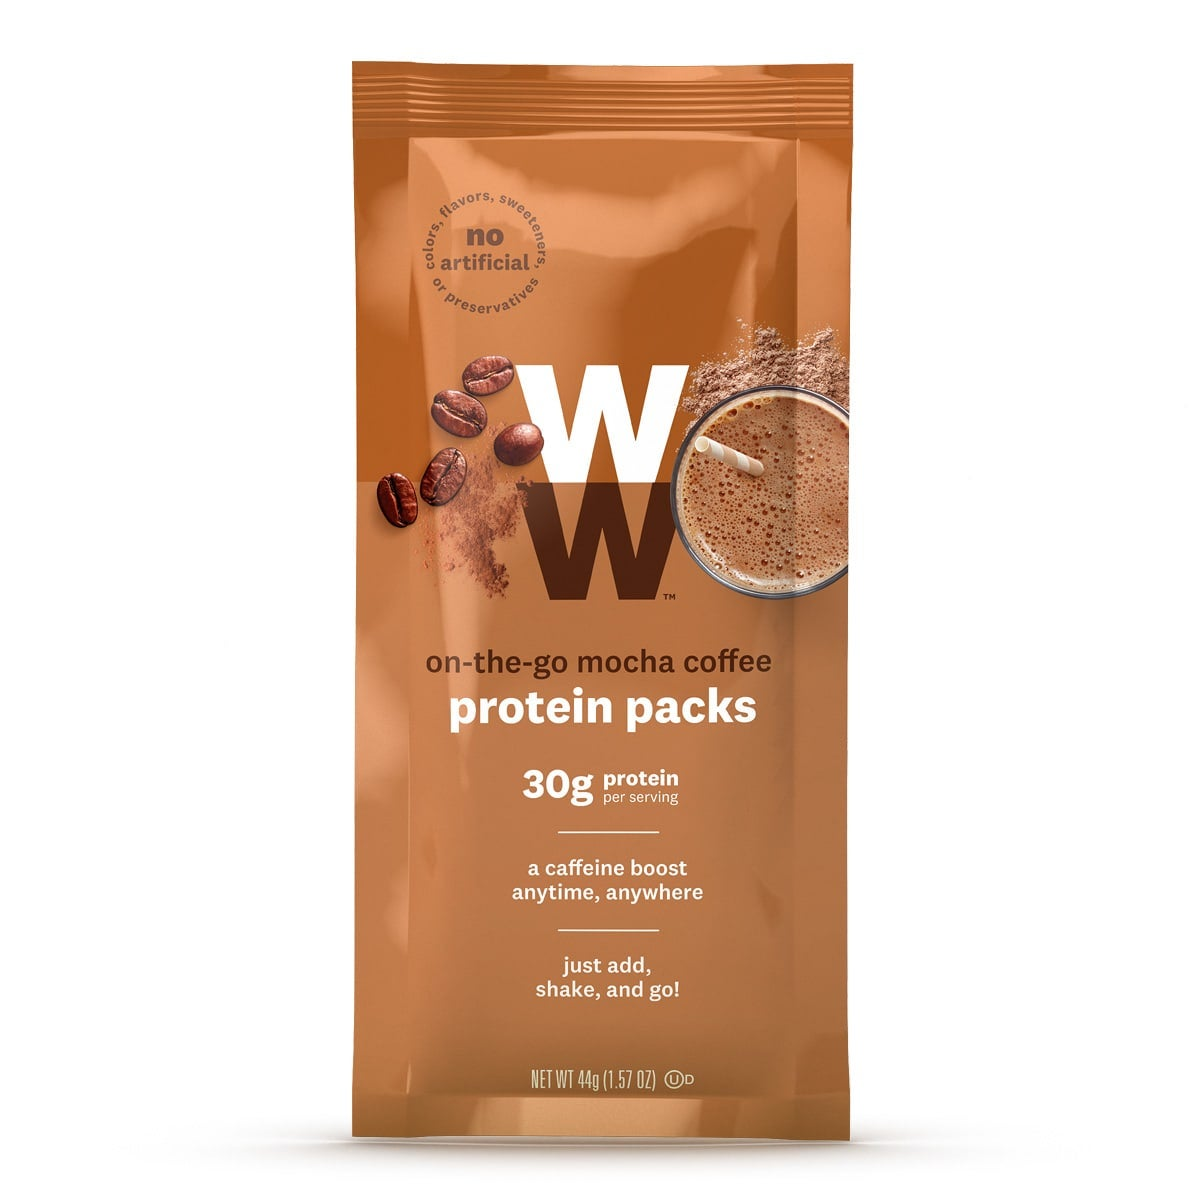 On the Go Mocha Coffee Protein Pack - front